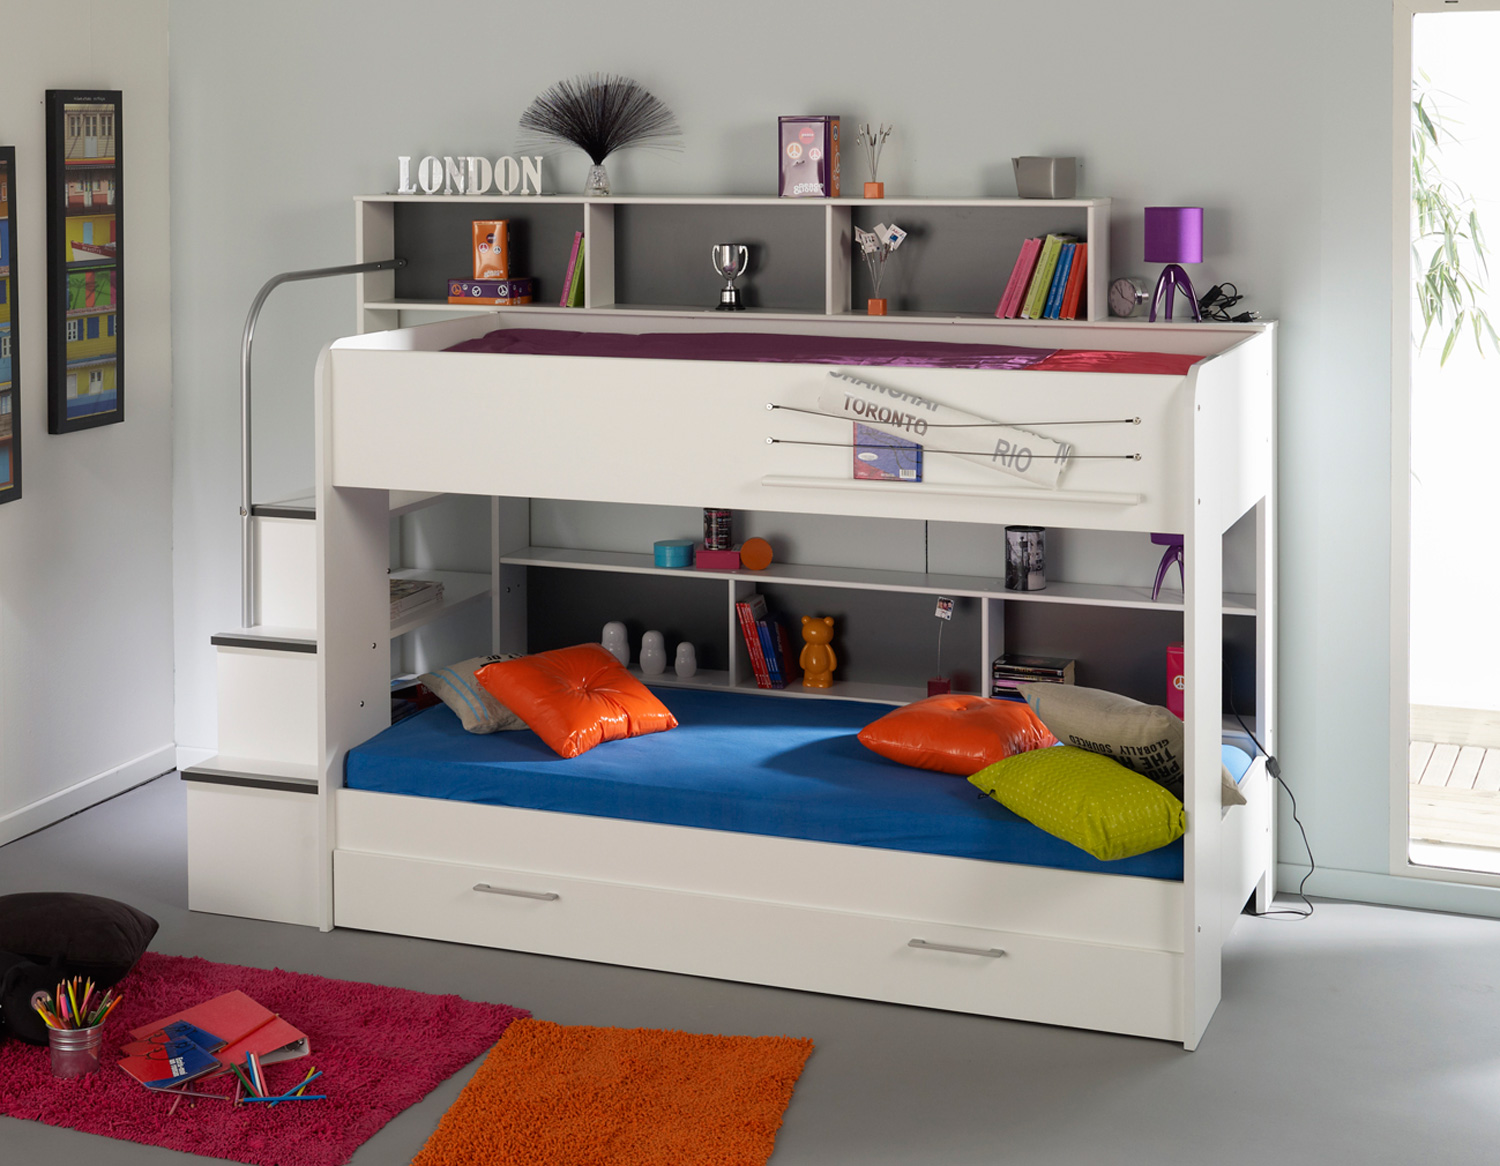 8 stunning bunk beds for kids design inoutinterior Bunk bed boys room